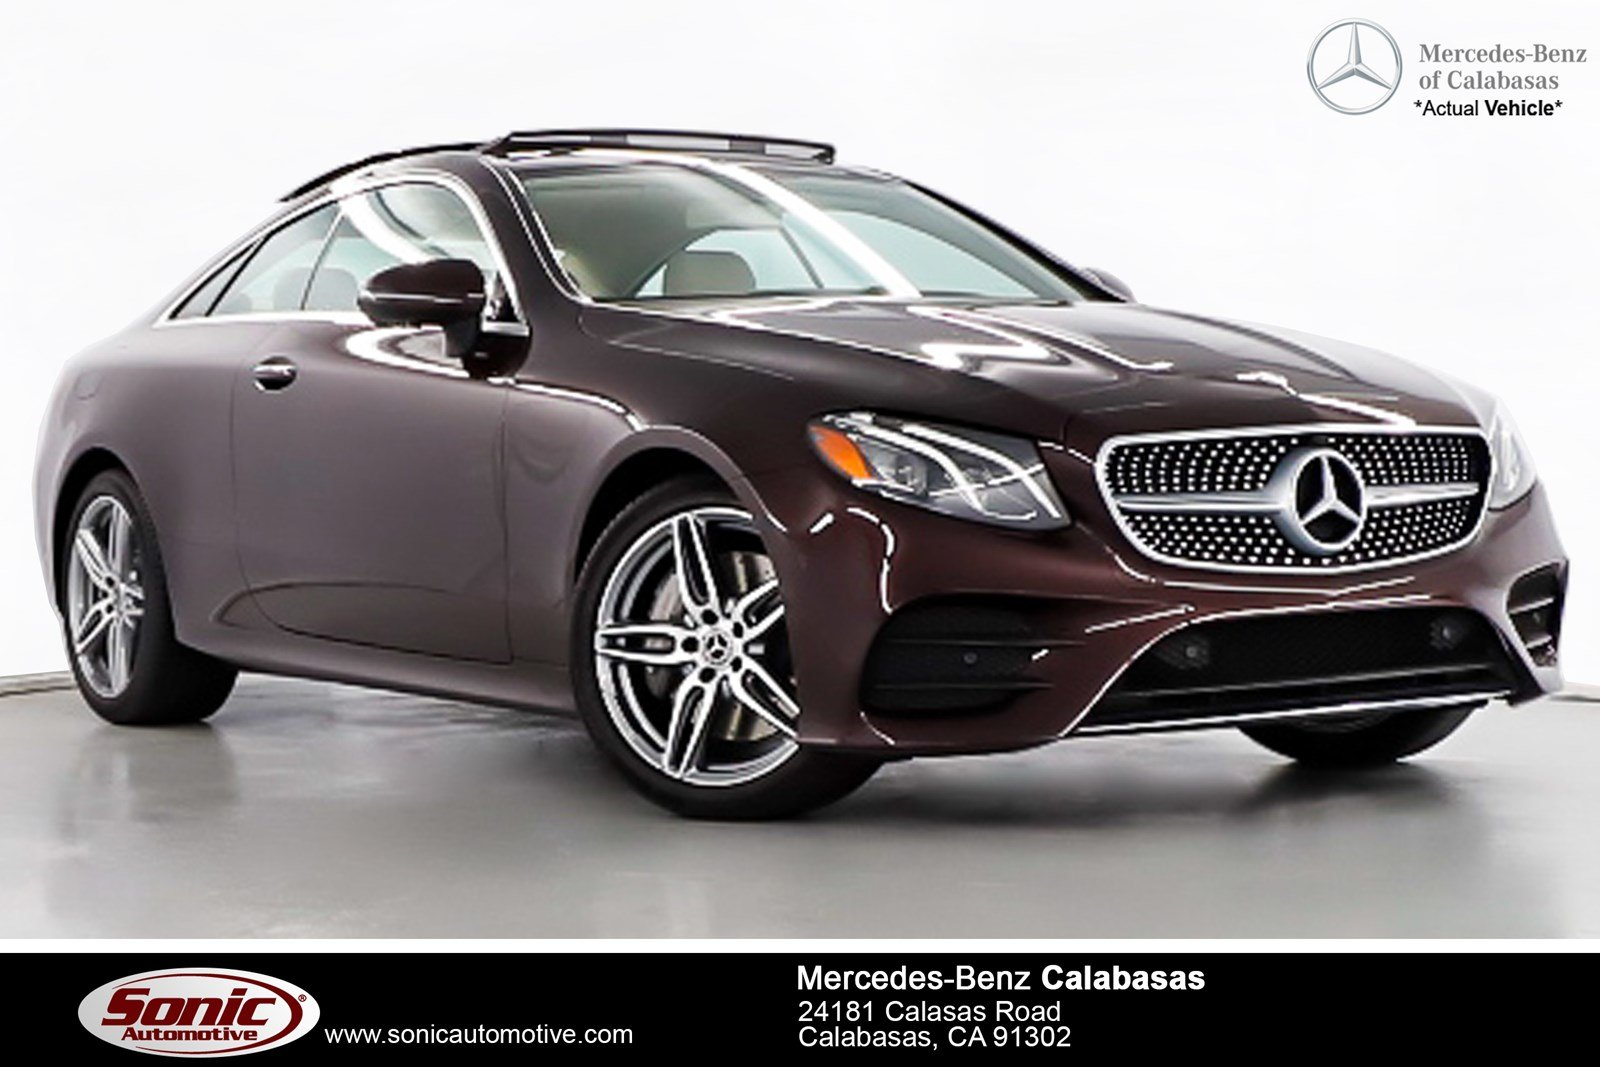 New 2019 Mercedes-Benz E-Class For Sale in Calabasas near Los Angeles CA |  Stock: KF076961